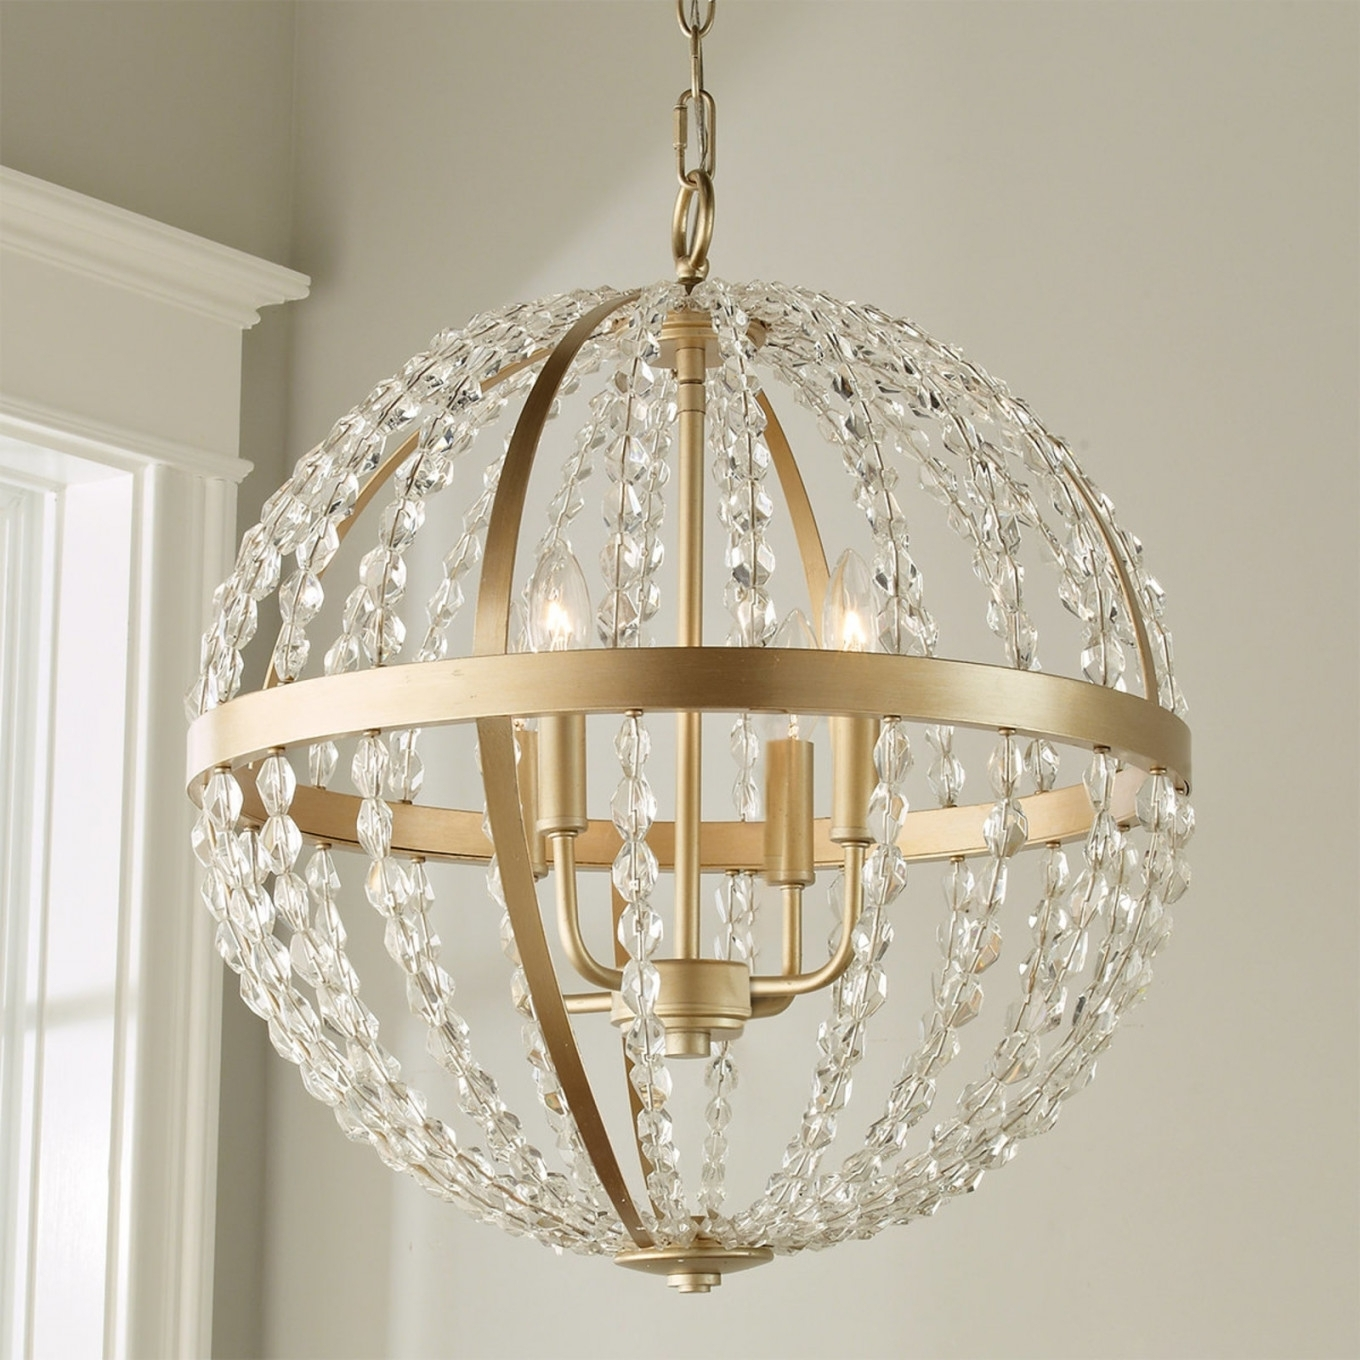 Ceiling Light Fixtures Rona – Light Fixtures Within Outdoor Ceiling Lights At Rona (#5 of 15)